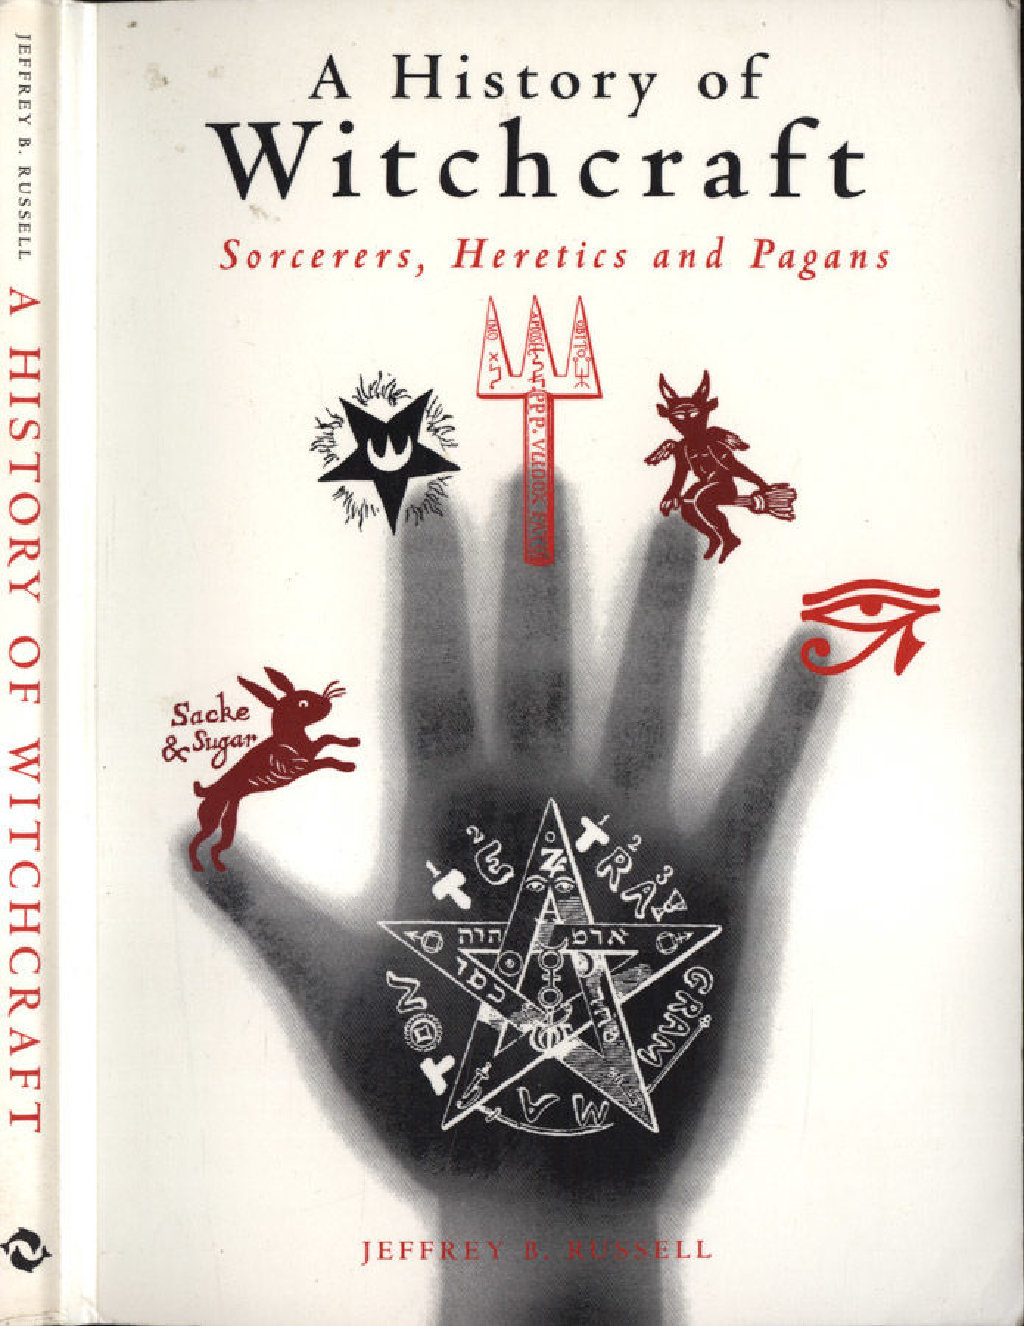 A History of Witchcraft: Sorcerers, Heretics and Pagans